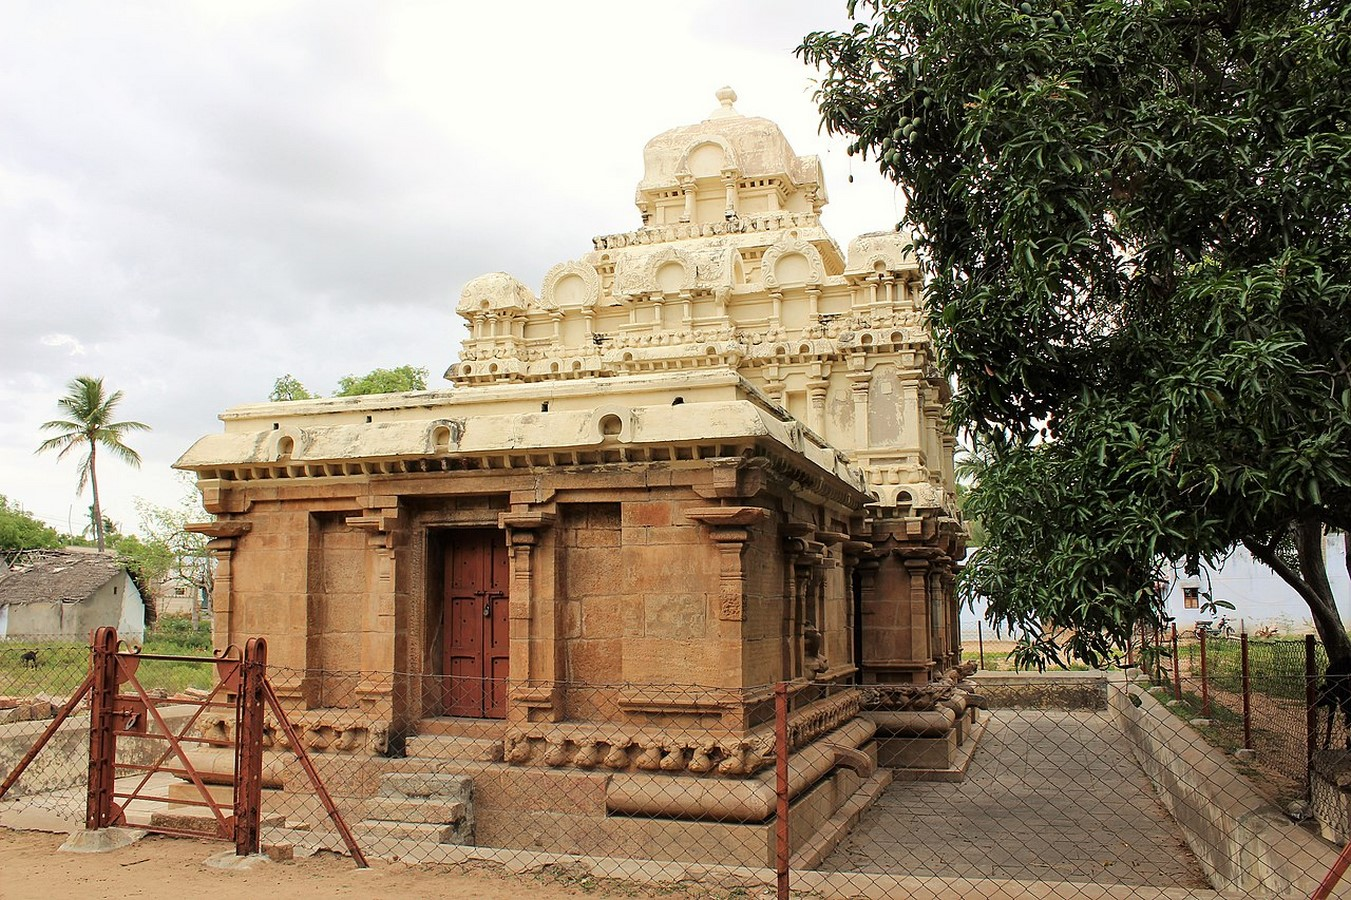 The Chola Empire and its Architectural Prowess - Sheet4